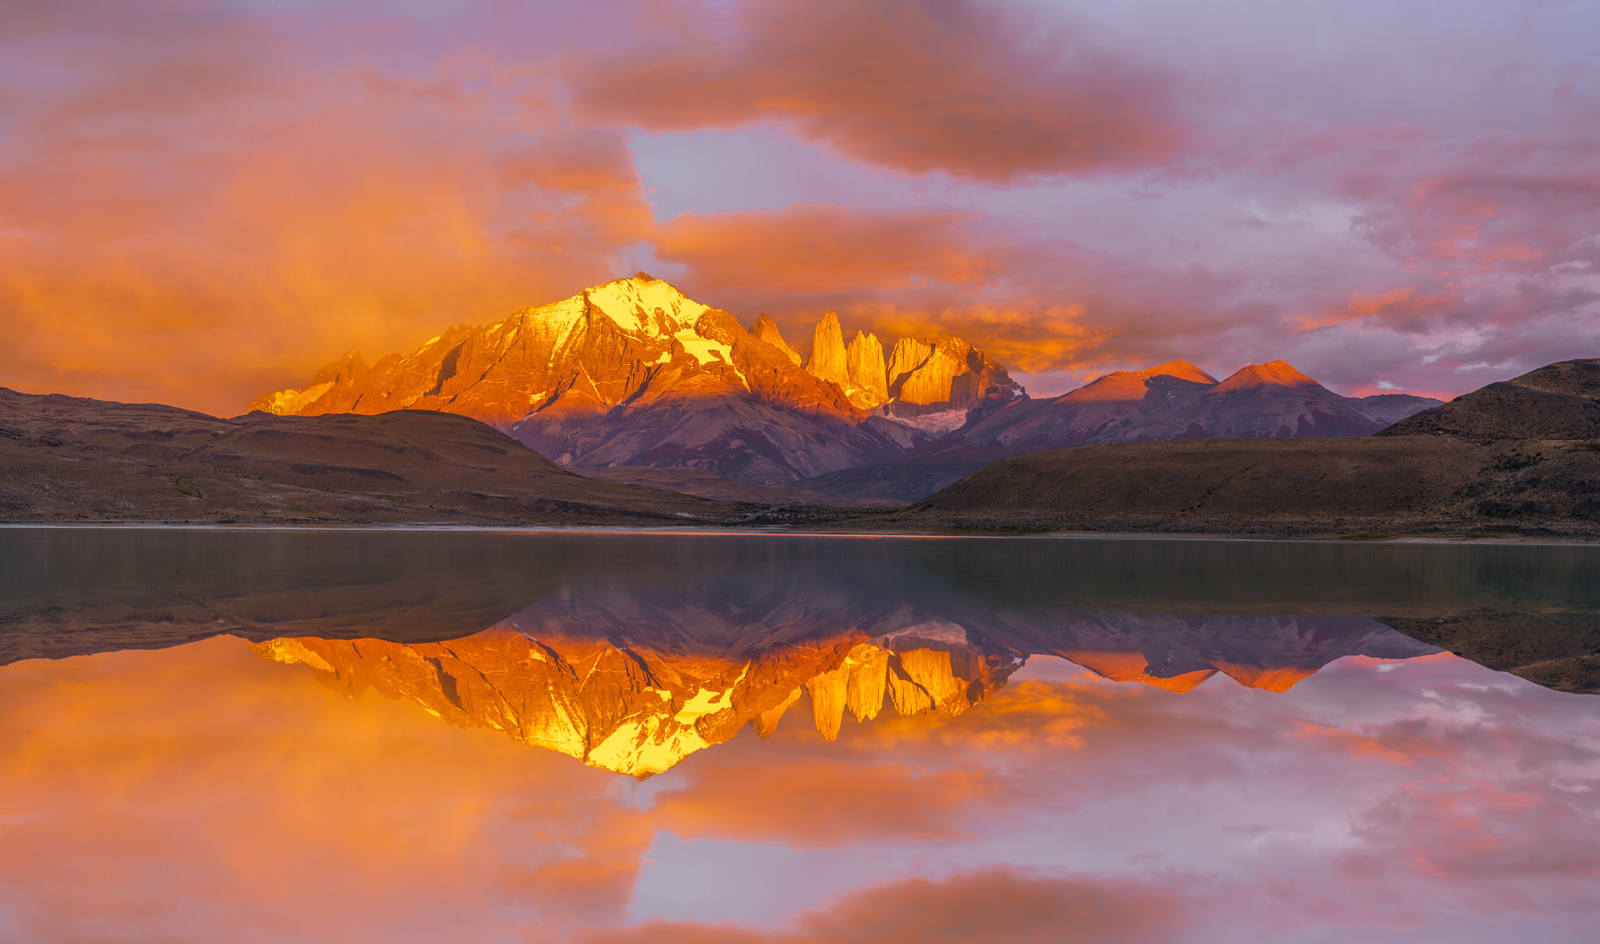 Laguna Amarga, Las Torres, Mountains, Pano, Panorama, Patagonia, Reflections, South America, Torres Del Paine, photo